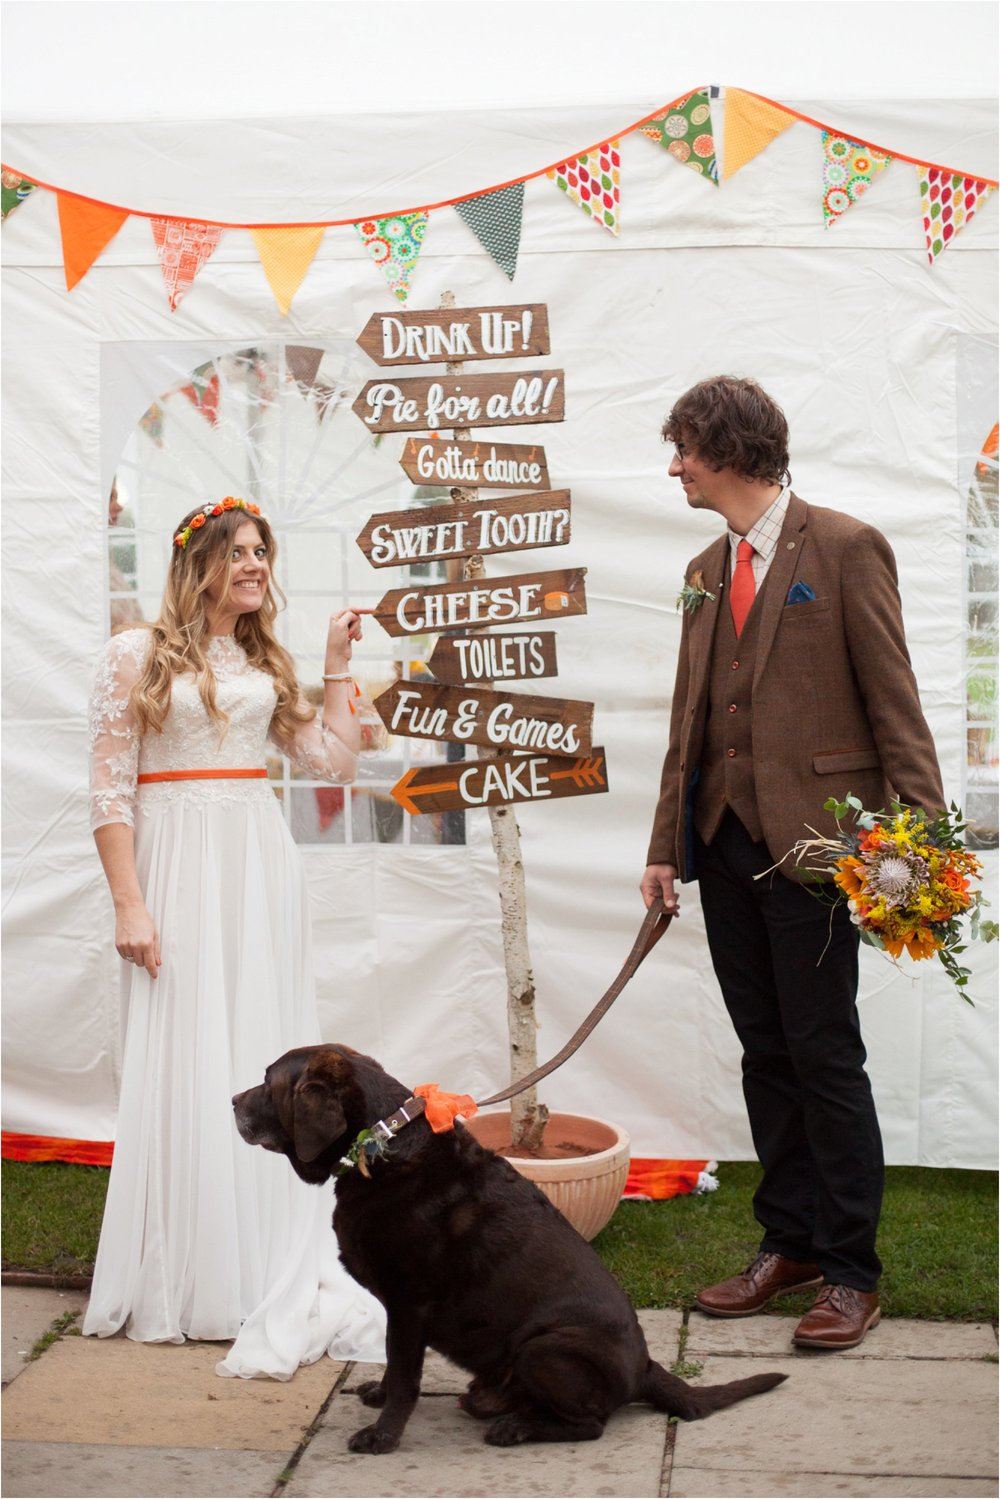 Styal_Wedding_Wilmslow_Cheshire_Autumn_Colourful_photography_0125.jpg